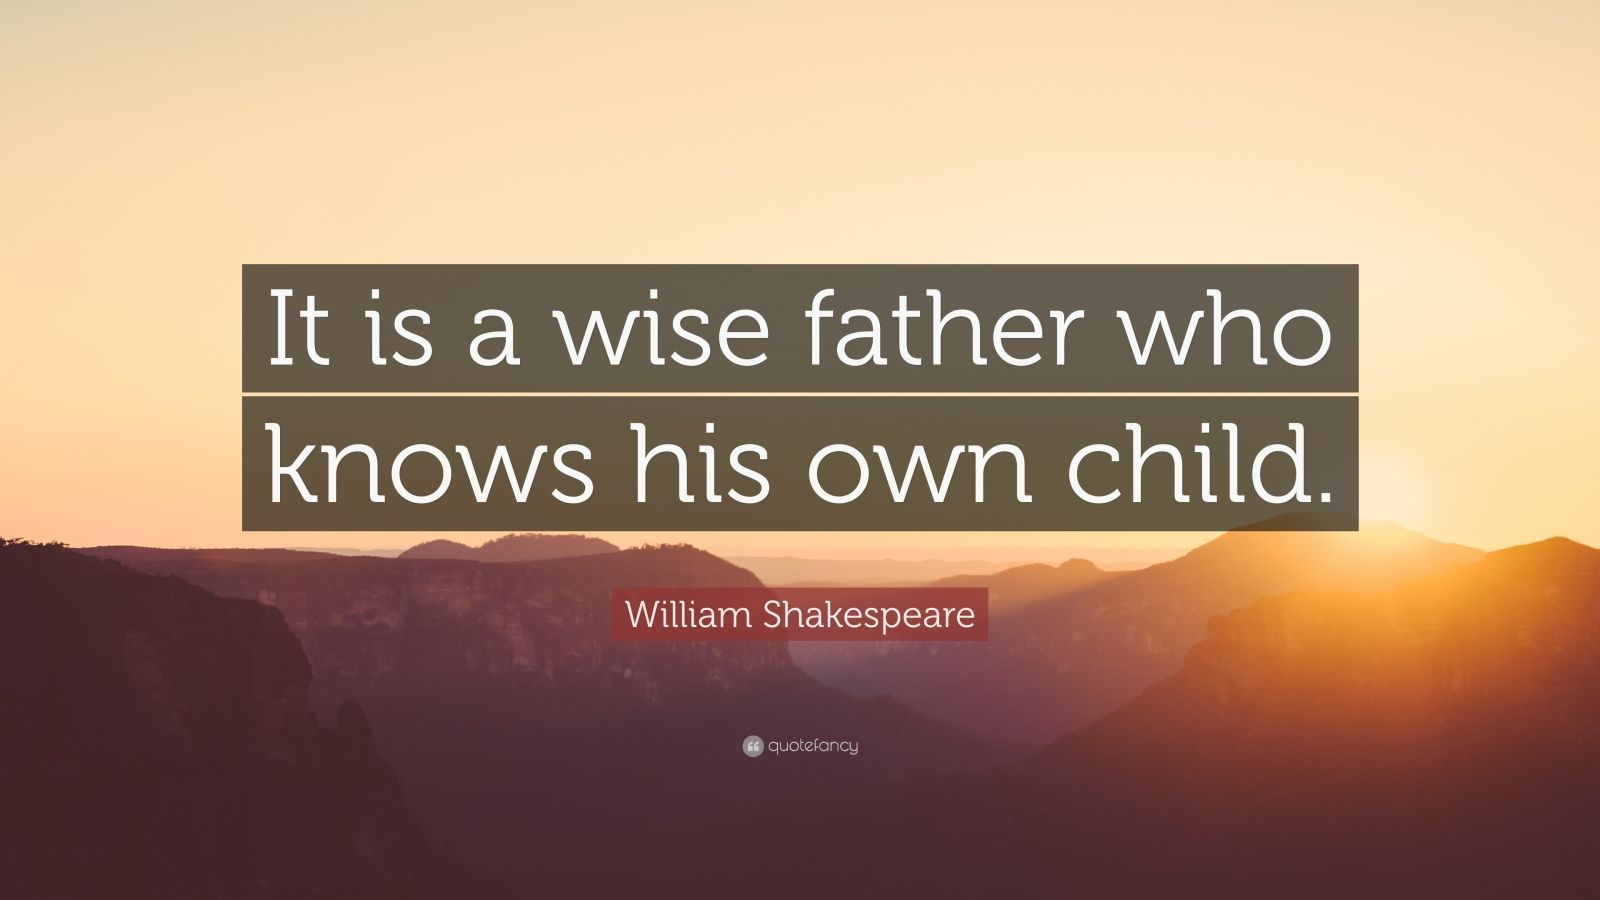 Shakespeare Life Quotes Discover The Top 10 Greatest Shakespeare Quotes Inspirational